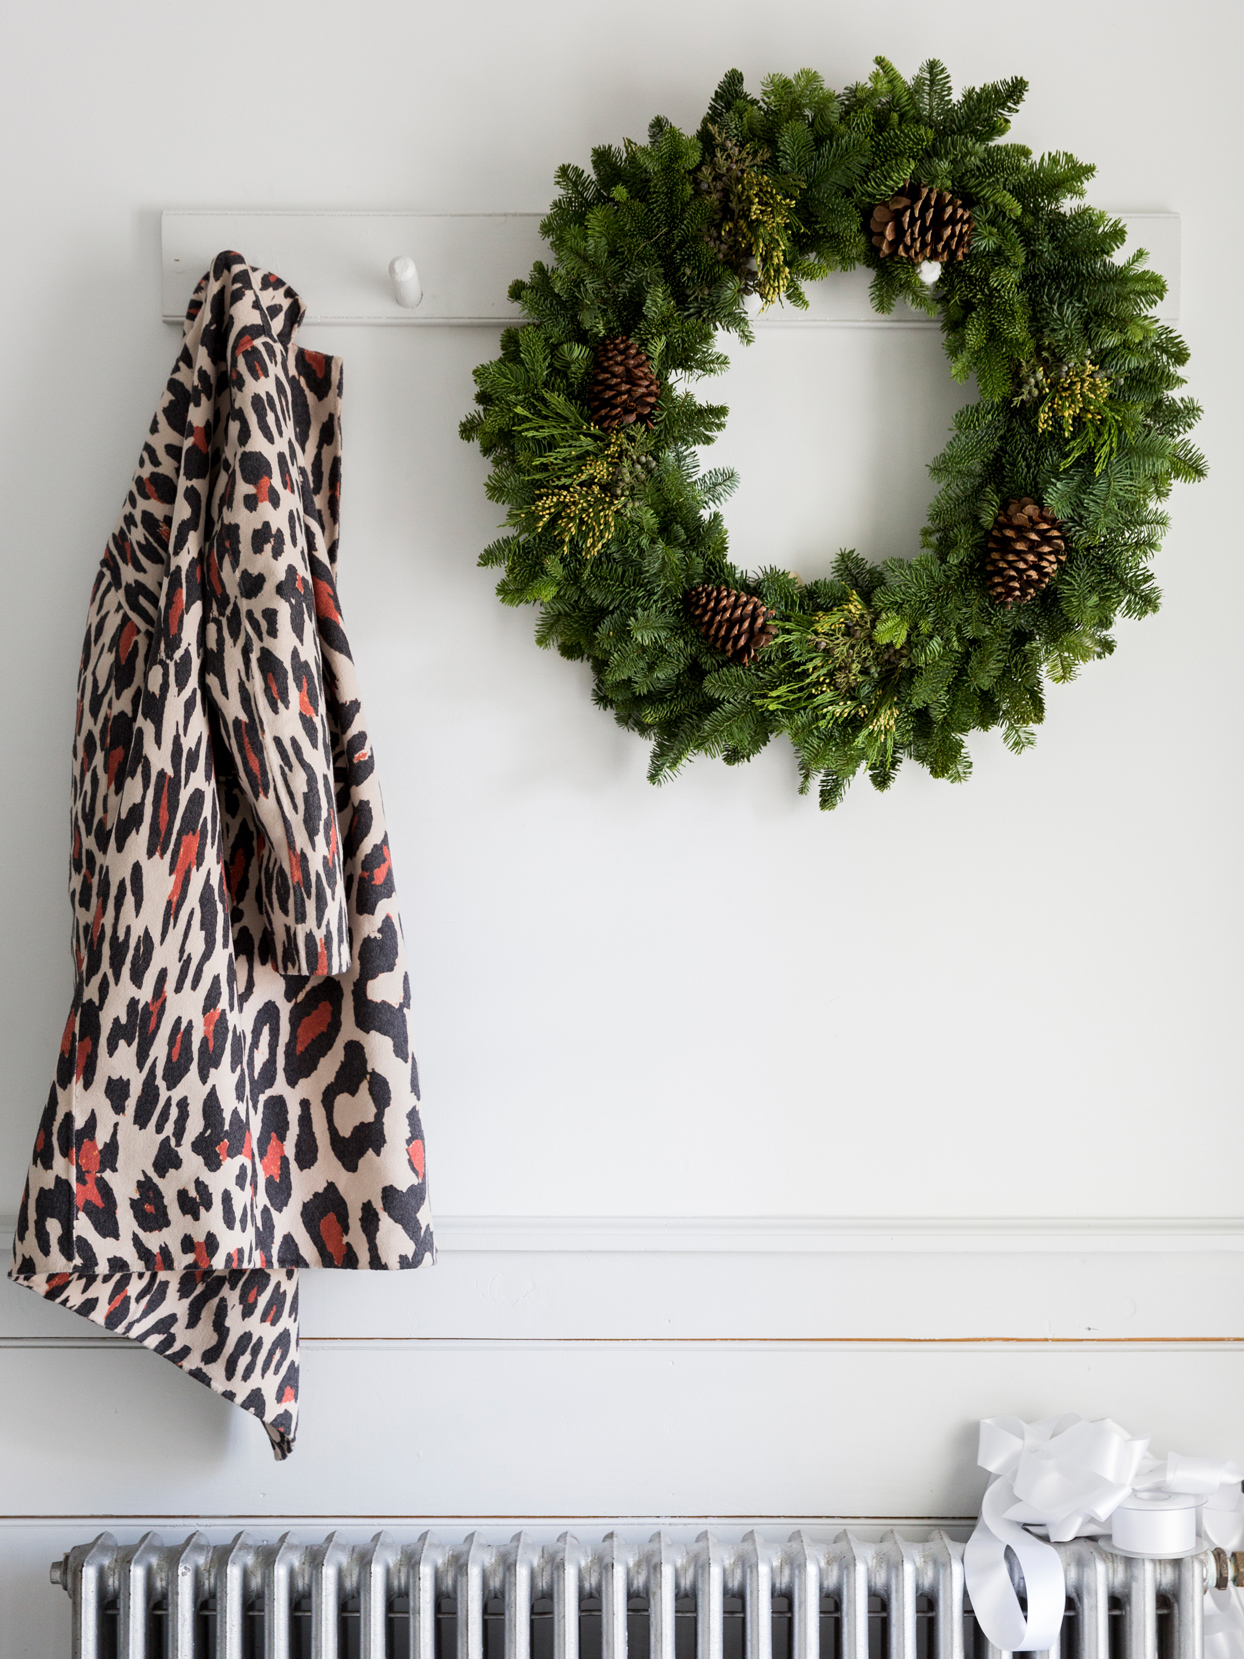 greenery wreath with pinecones hanging on wall